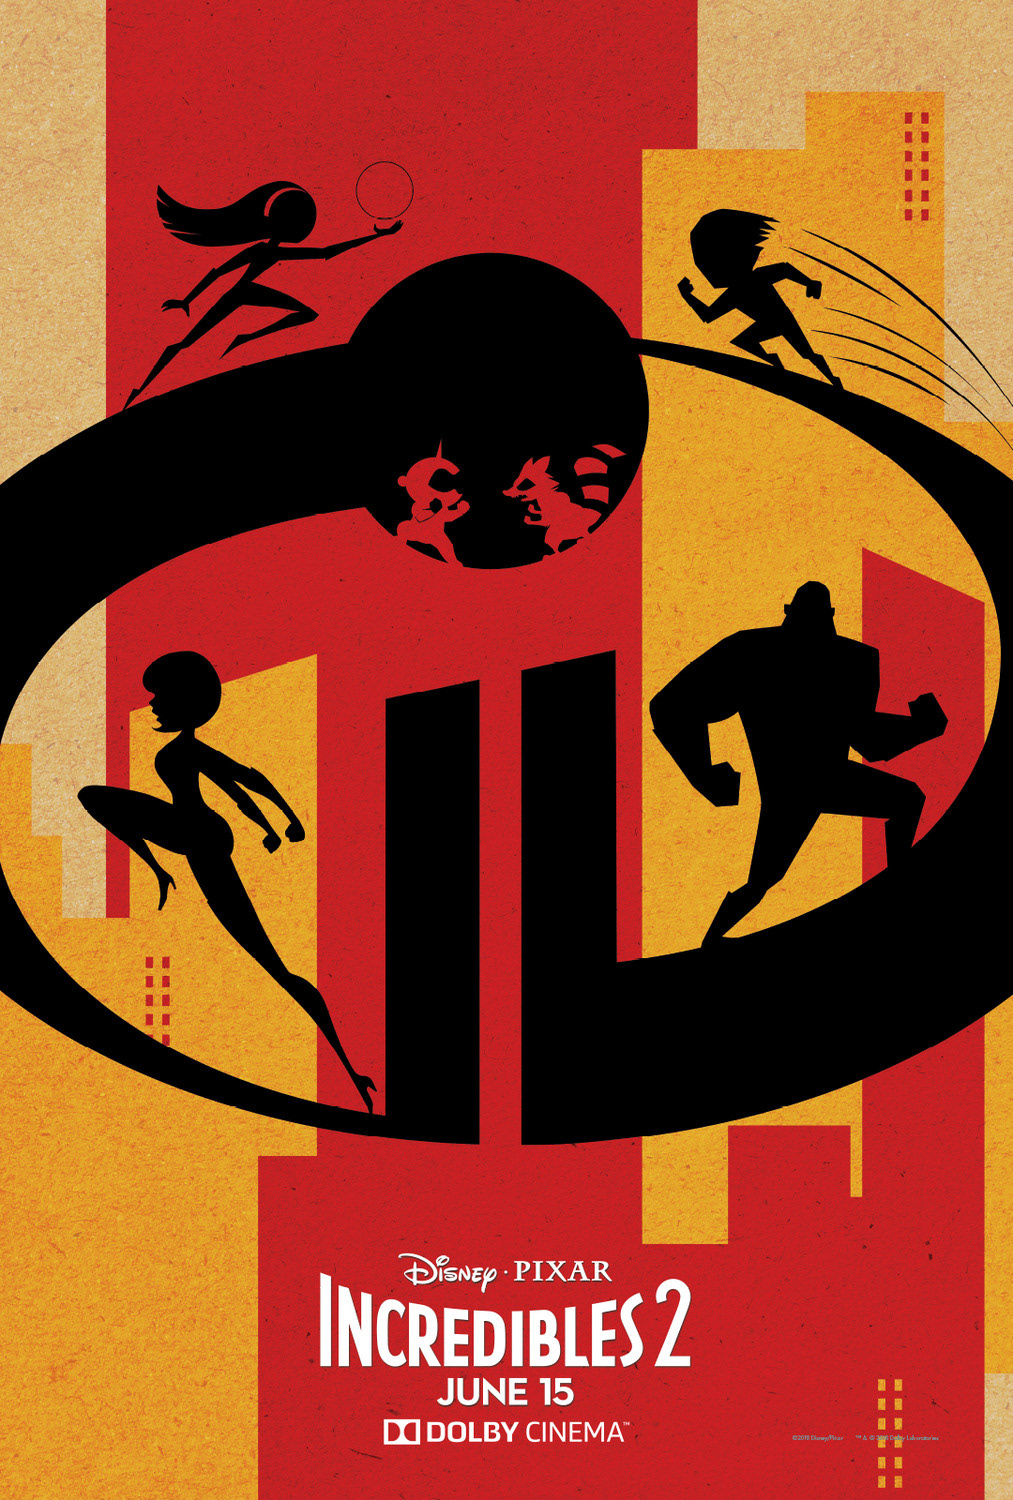 Incredibles 2 - Dolby Digital Poster on Behance